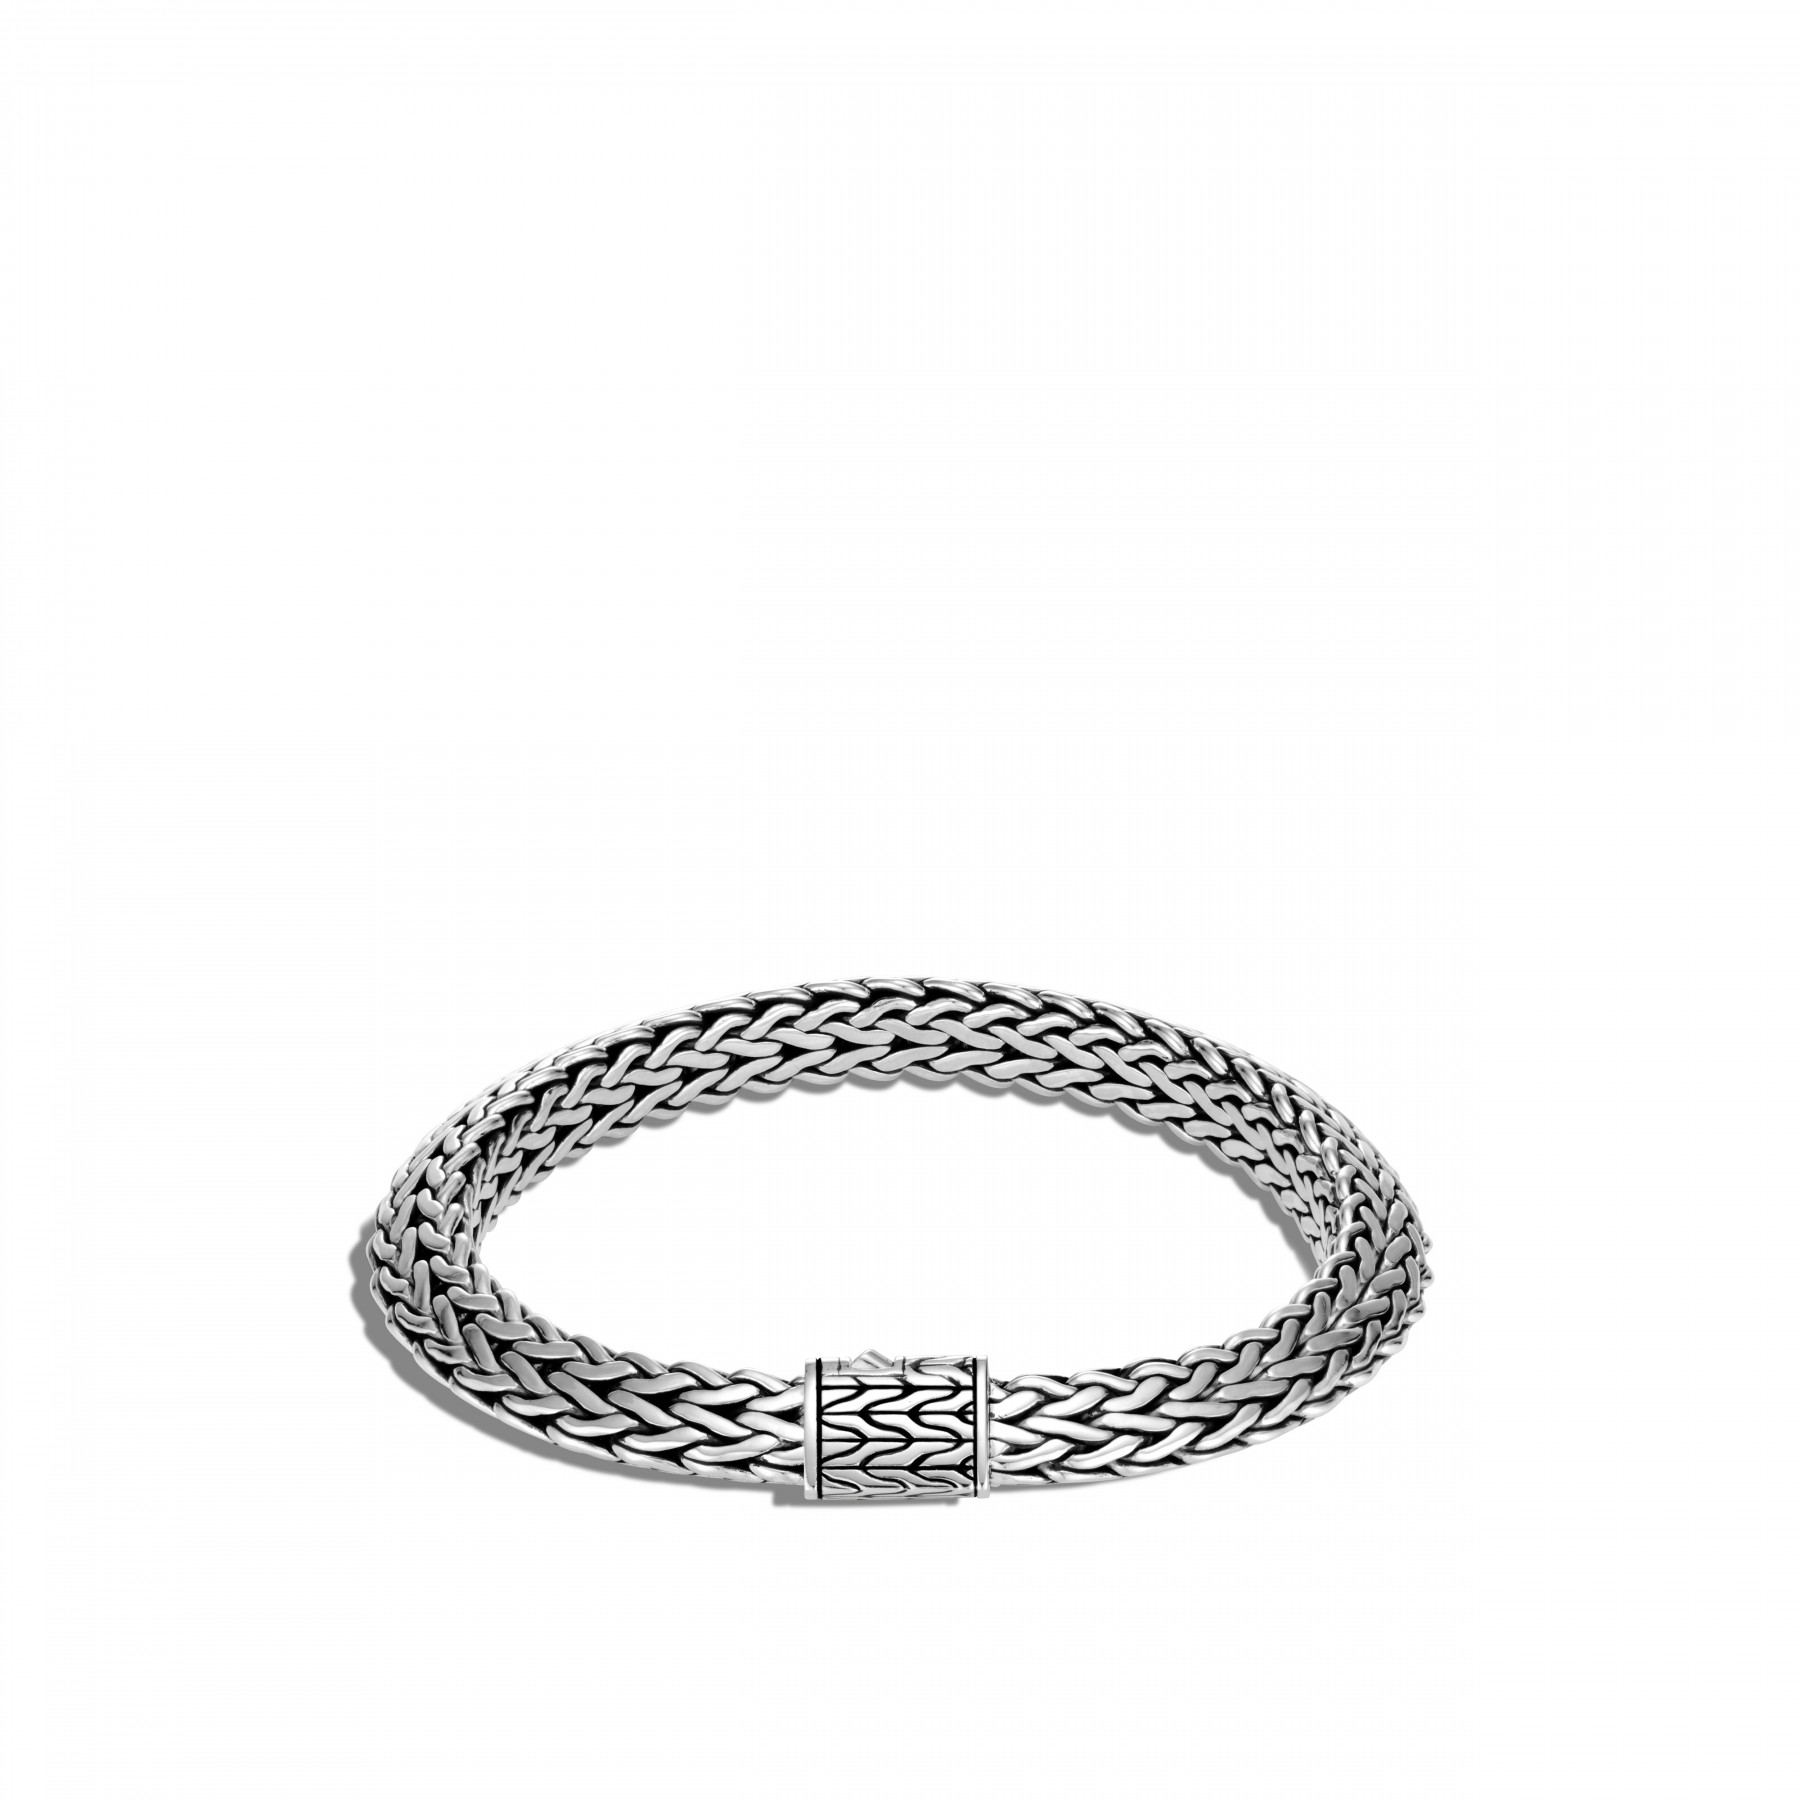 John Hardy Classic Chain Silver Bracelet - 8mm front view